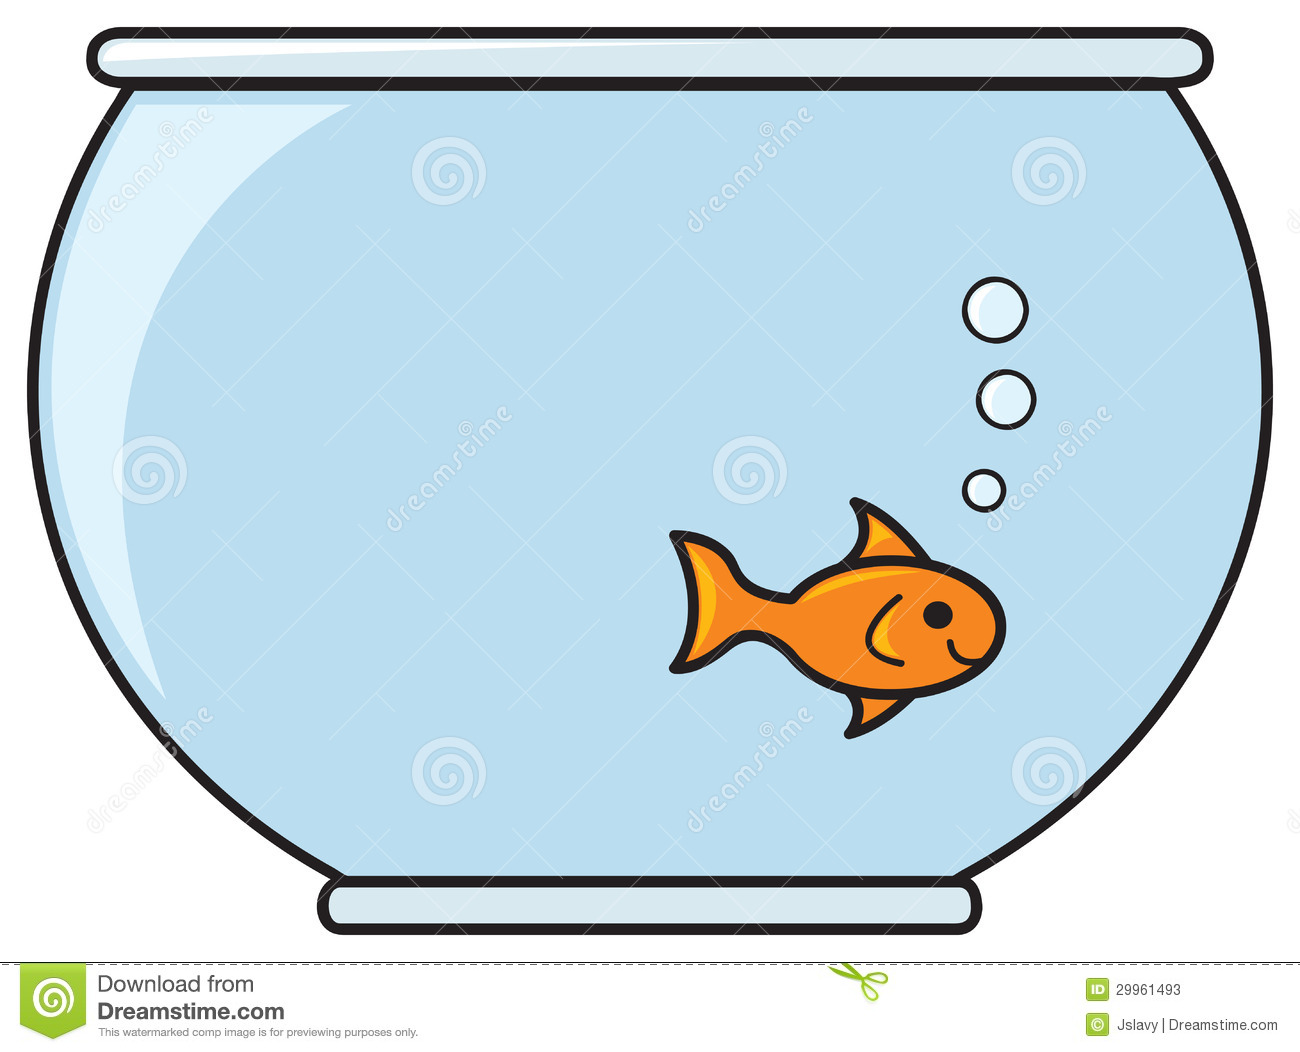 Fish in a bowl stock photos image 29961493 for Fish in a bowl